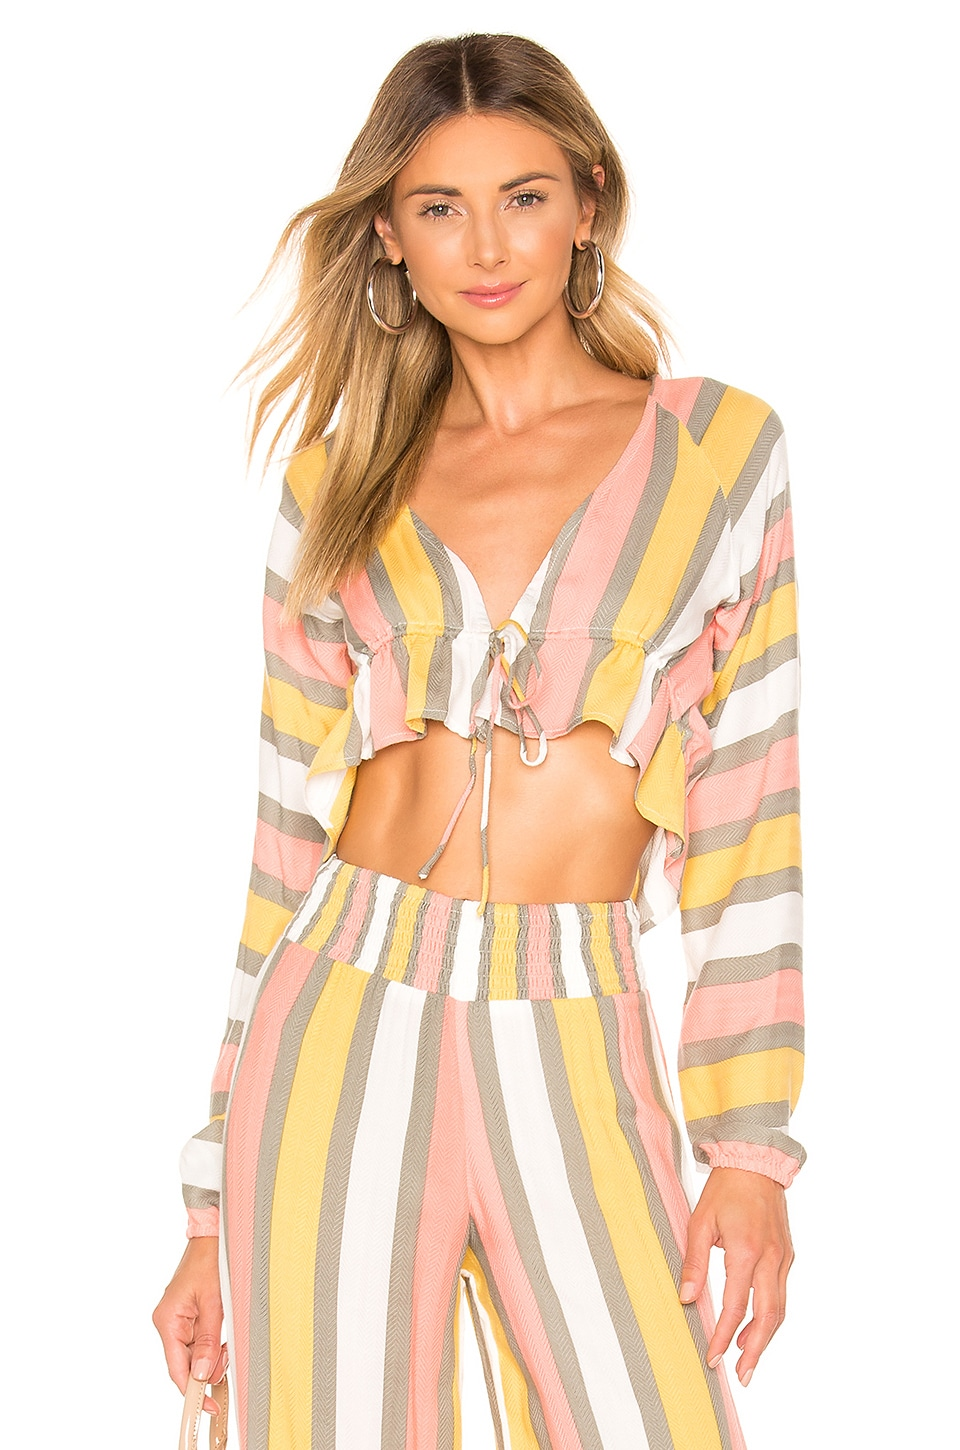 House of Harlow 1960 X REVOLVE Aerglo Top in Earthy Stripe